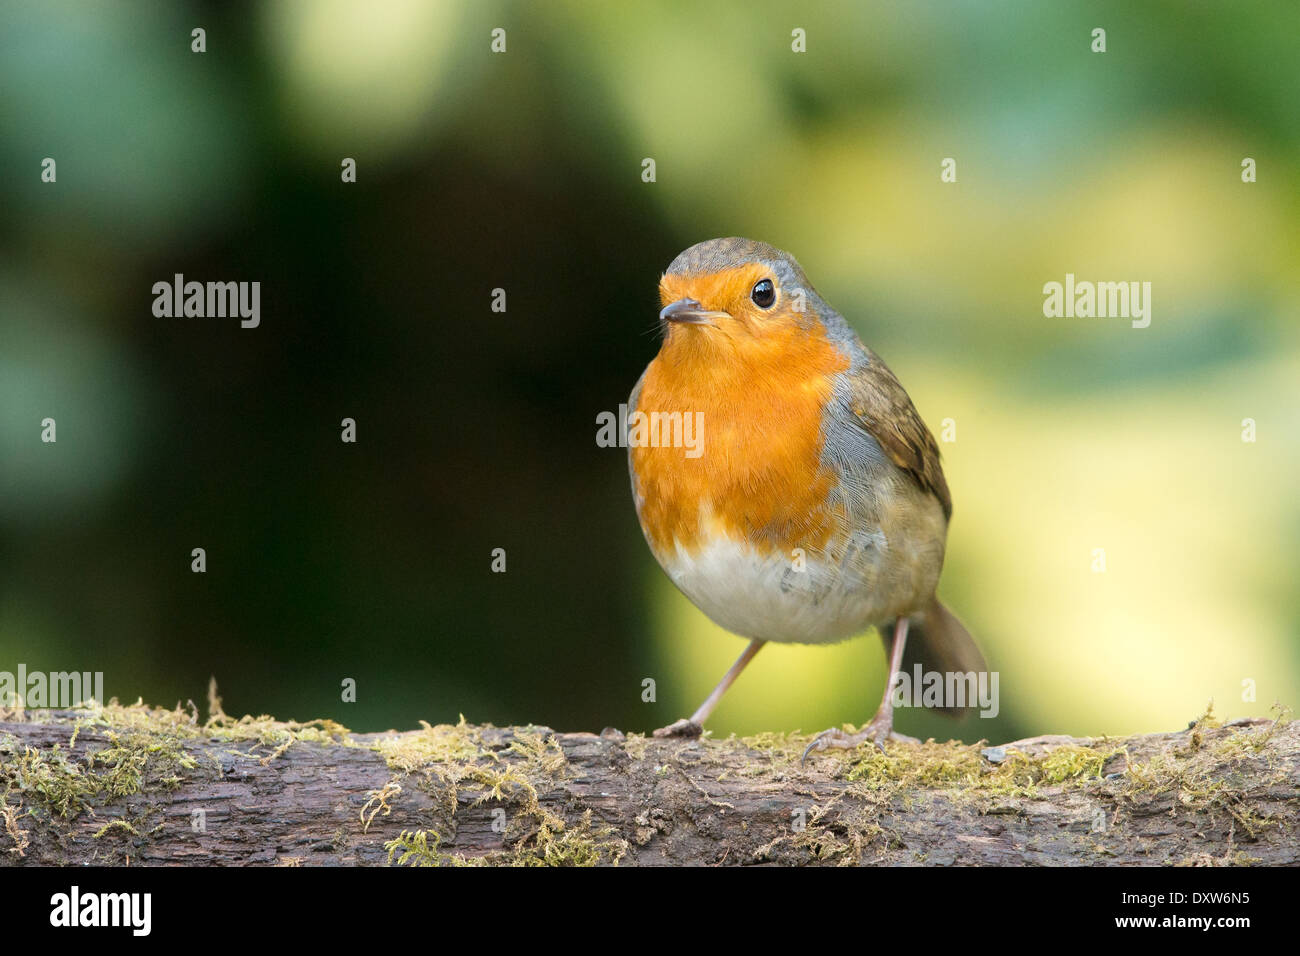 European Robin (Erithacus rubecula) standing on a mossy log - Stock Image